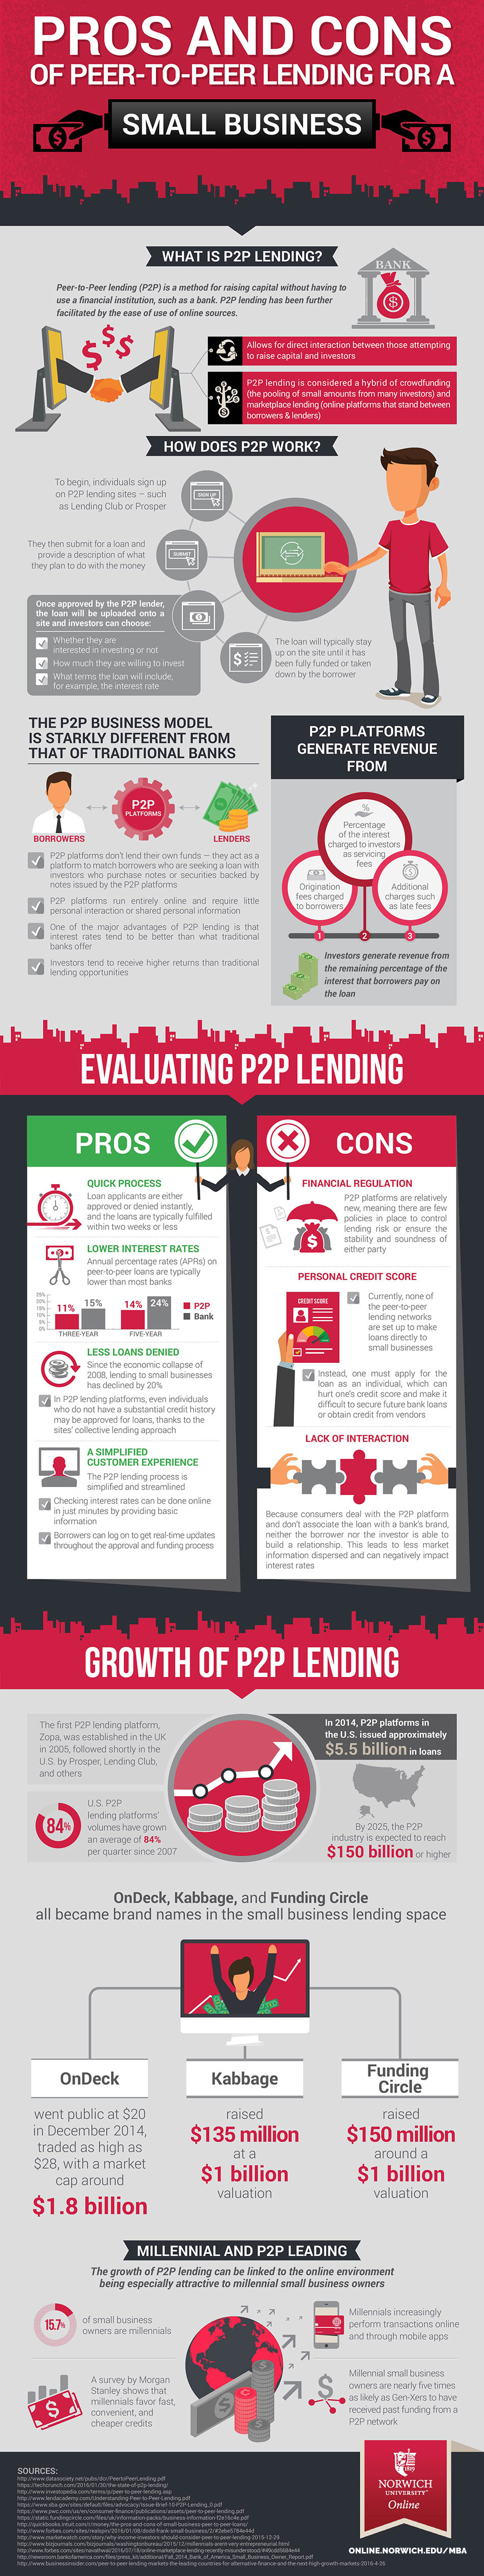 infographic on peer-to-peer lending in small business